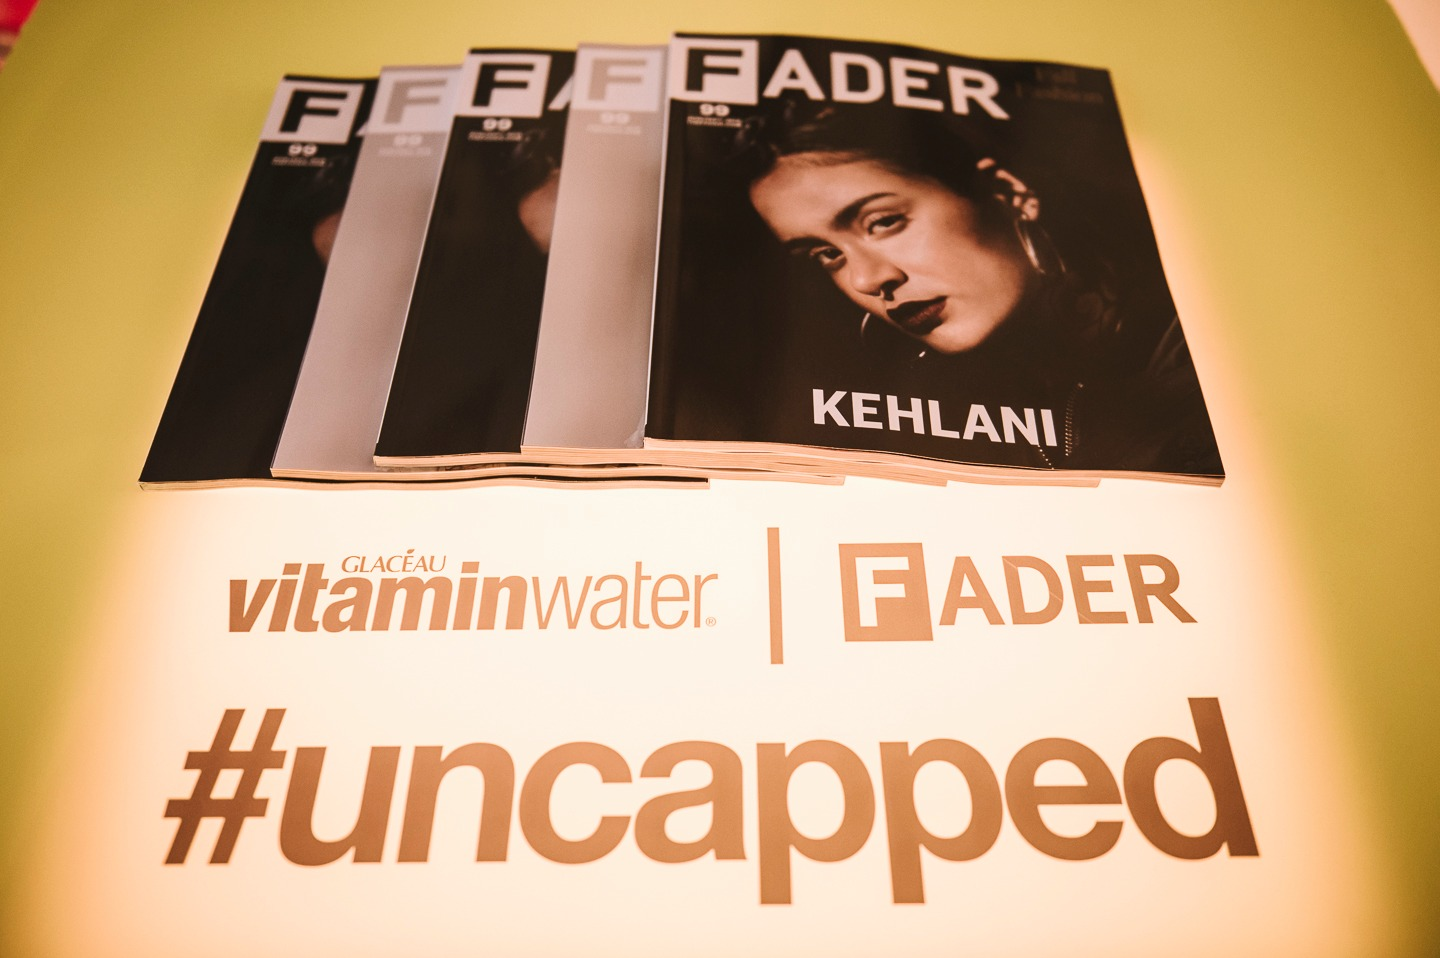 #uncapped Gets Off To An Electric Start With Matt And Kim And Sevyn Streeter